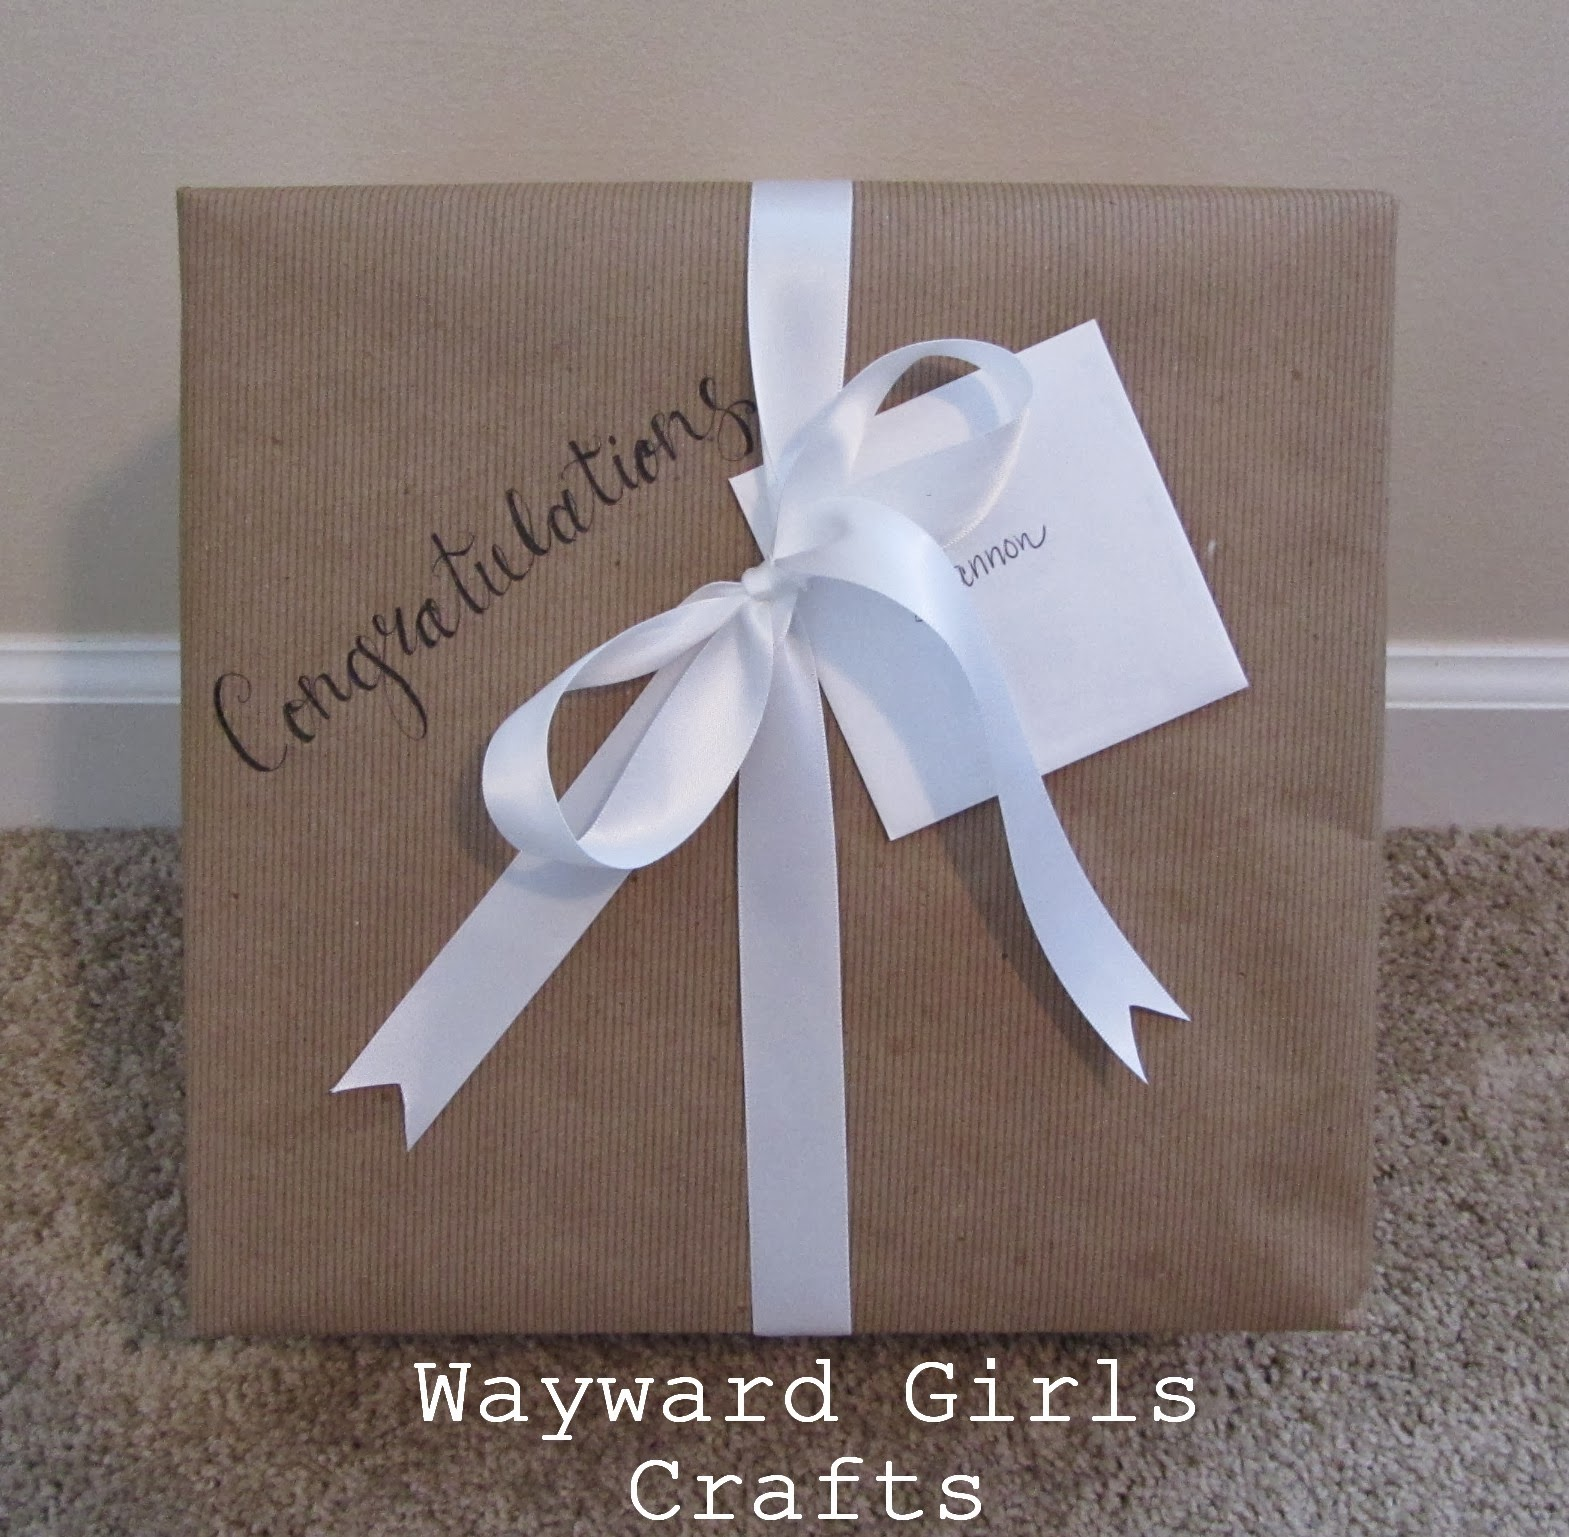 wayward girls crafts present wrapping a bridal shower gift